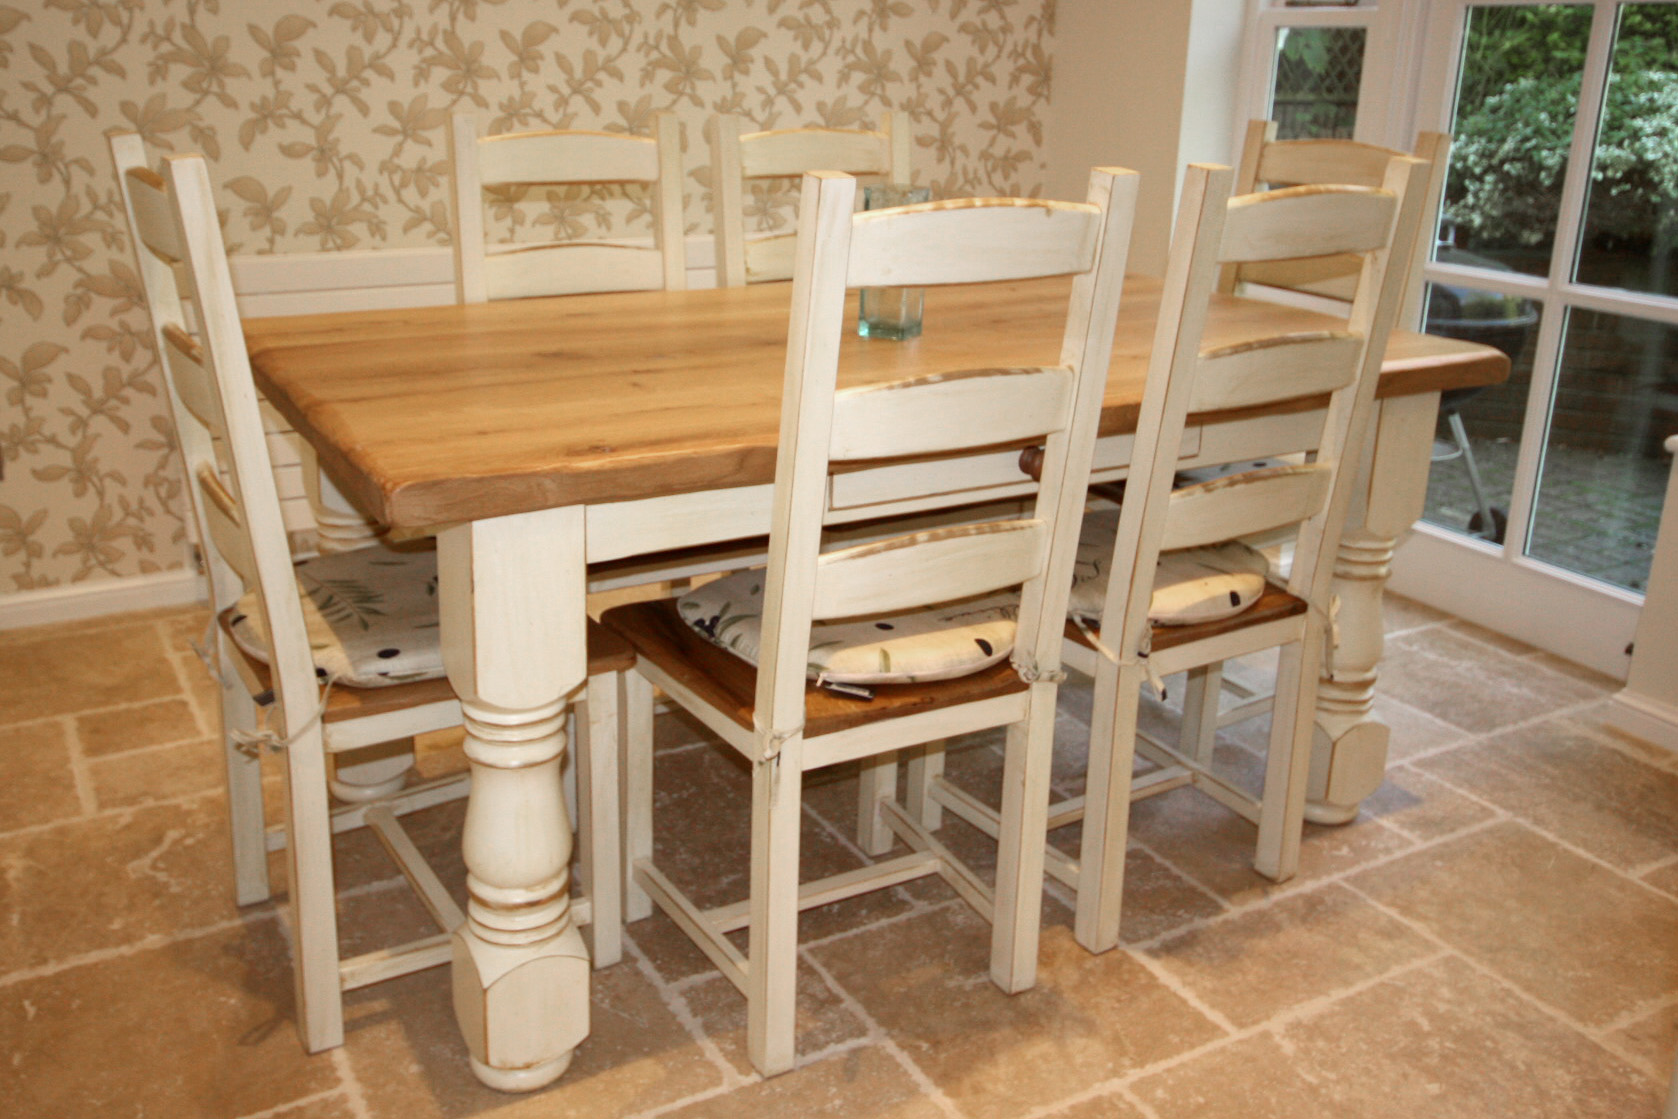 Reith's Furniture - bespoke lounge and dining room furniture